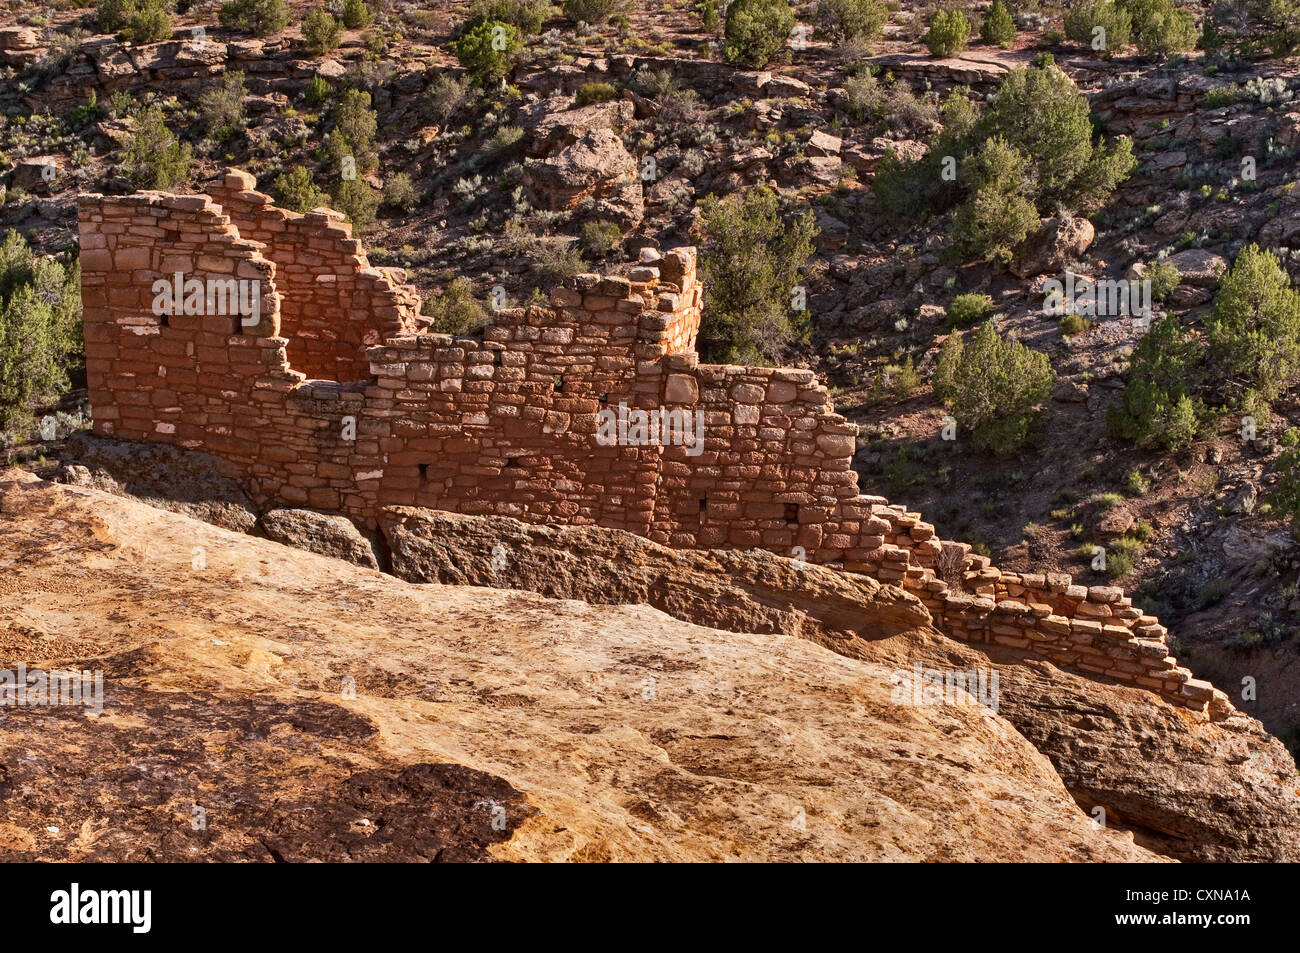 Stronghold House ruin at Hovenweep National Monument, Colorado Plateau, Utah, USA - Stock Image